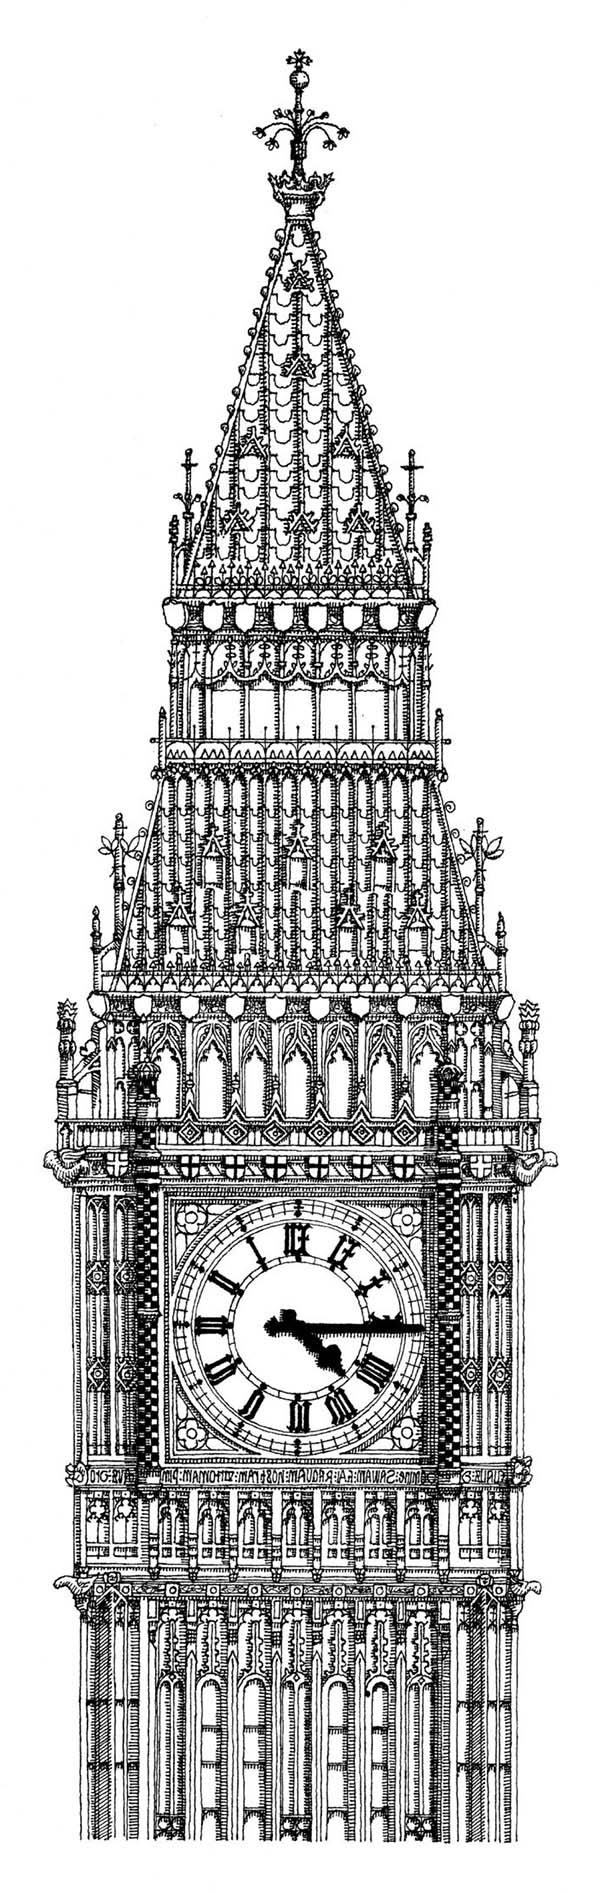 Big Ben, : The bell Big Ben is Housed within the Elizabeth Tower Coloring Page